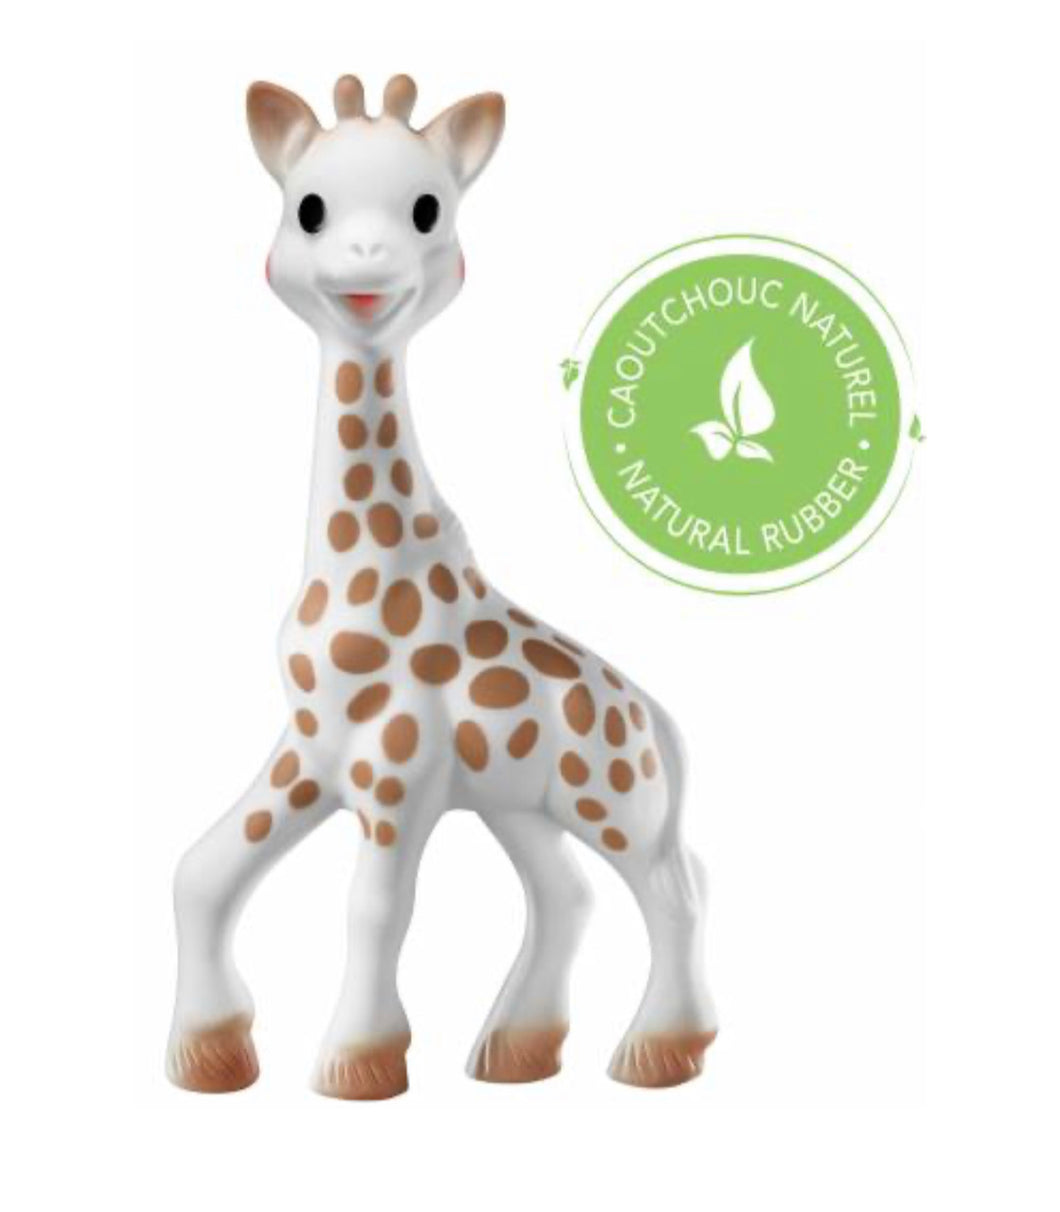 Sophie la girafe® - Mandi at Home